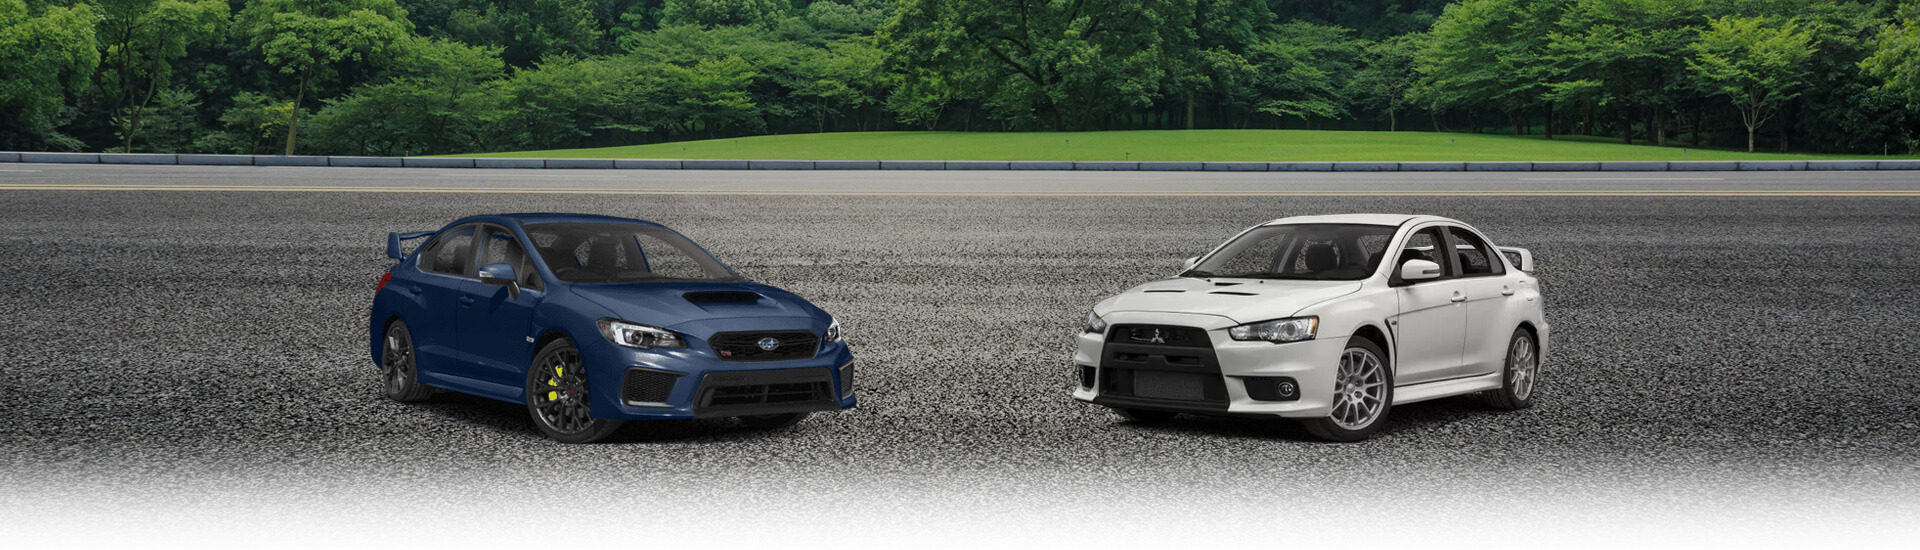 Mitsubishi Lancer Evolution vs Subaru WRX STI